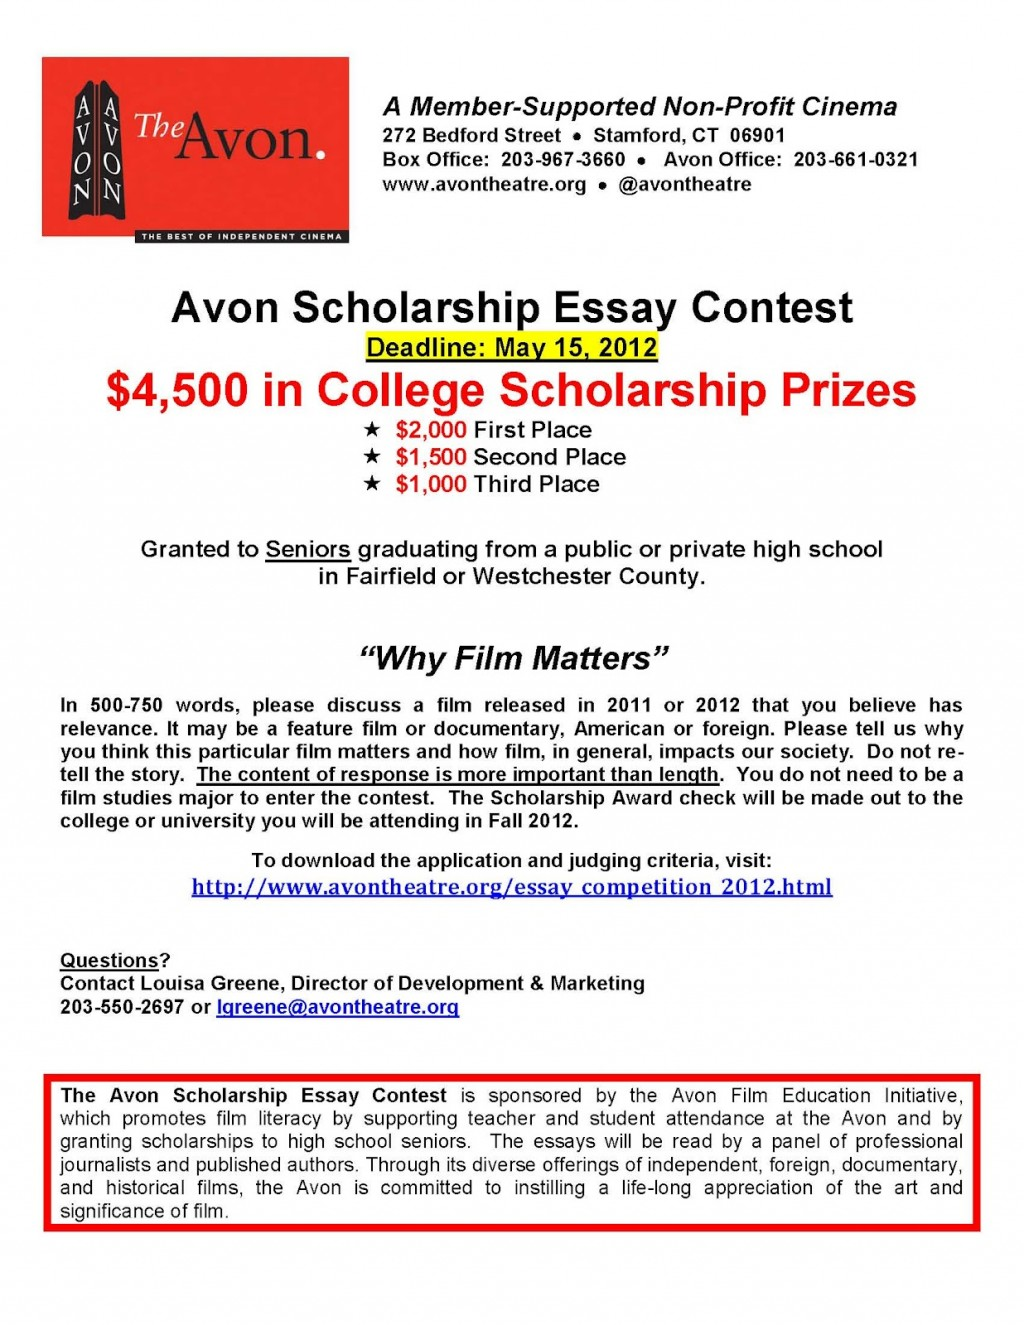 003 No Essay College Scholarship Prowler Free Scholarships For High School Seniors Avonscholarshipessaycontest2012 In Texas California Class Of Short Unbelievable With Without Requirements Essays Required Large